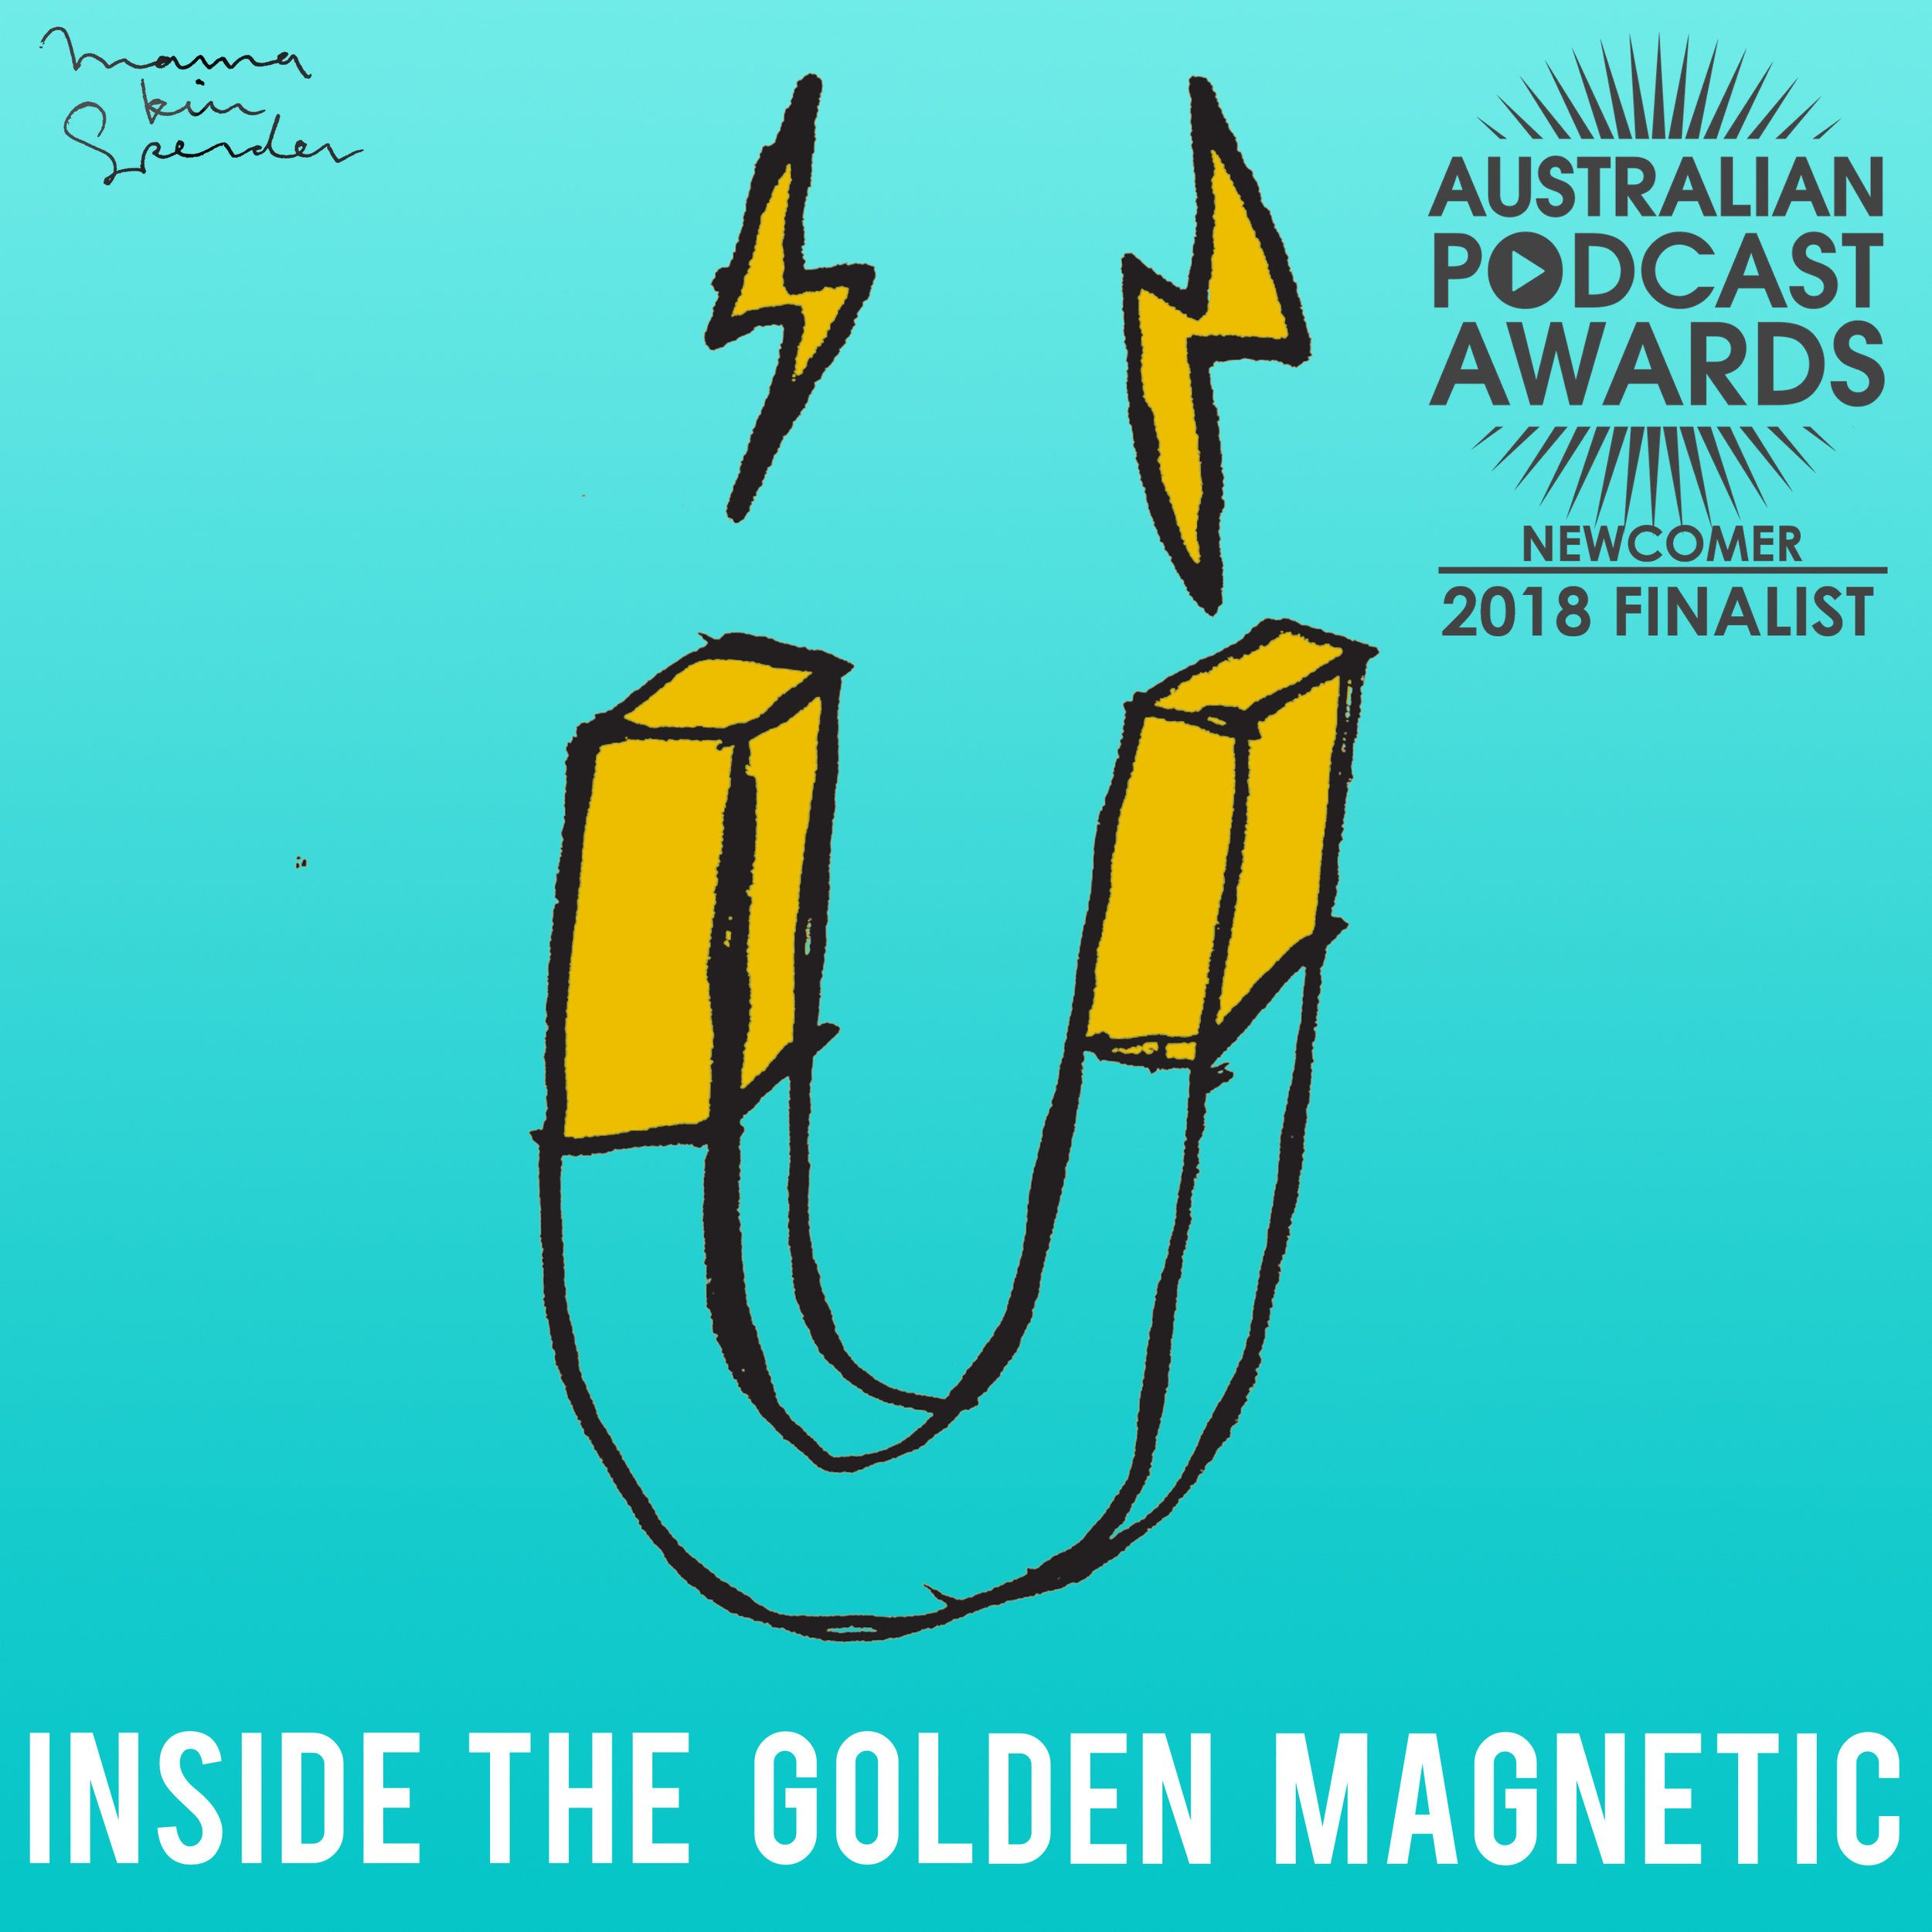 INSIDE THE GOLDEN MAGNETIC - ENGINEERED · PRODUCED · MIXED · MANAGED